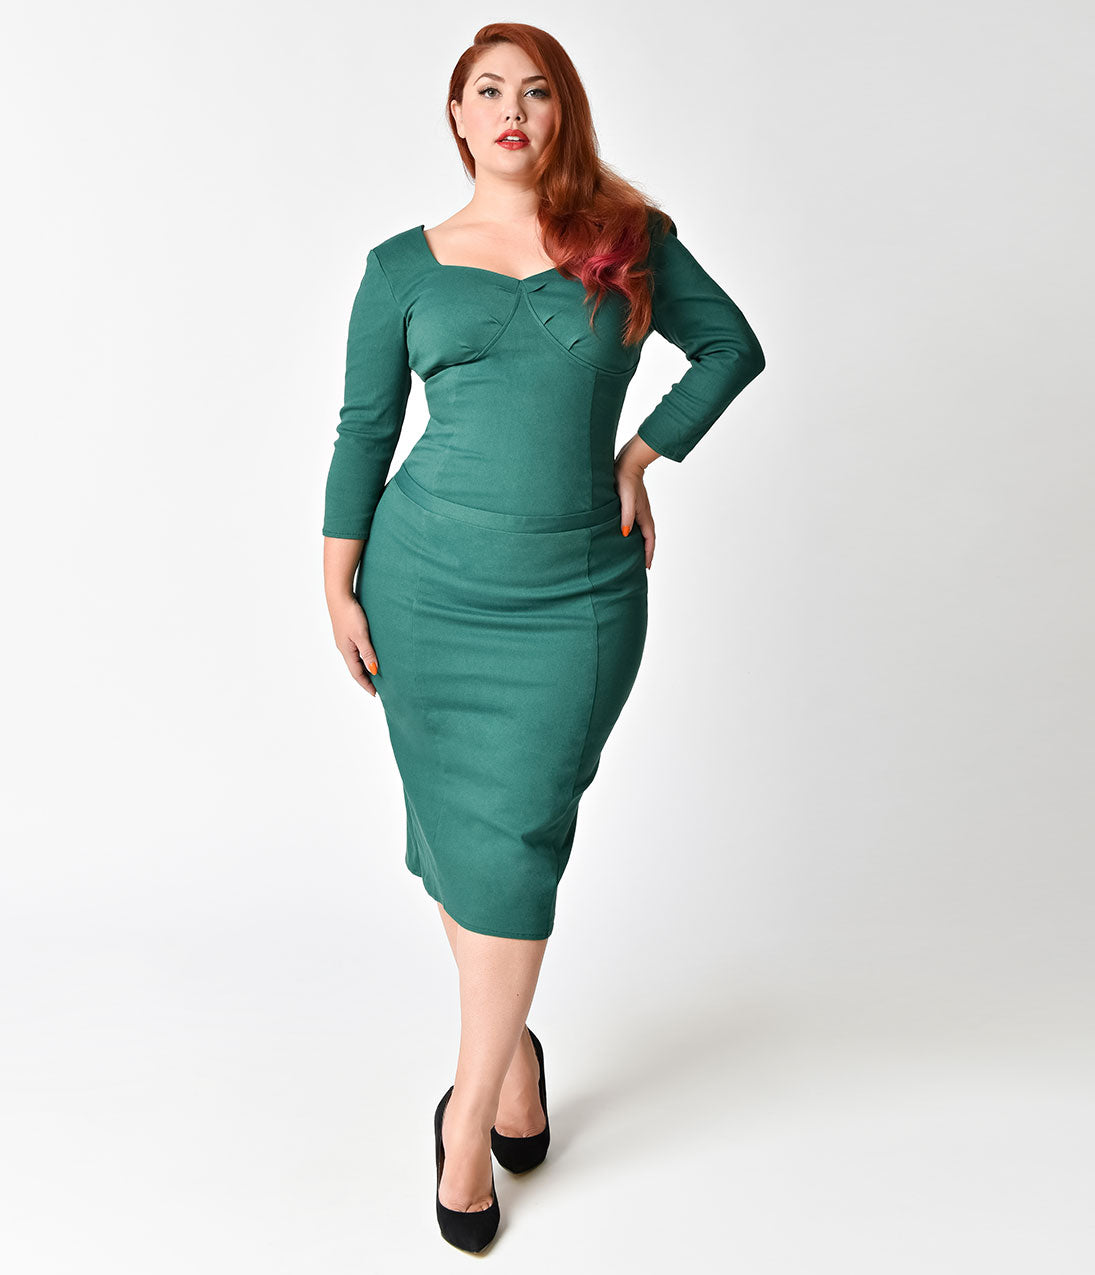 1950s Plus Size Dresses, Clothing and Costumes Janie Bryant For Unique Vintage Plus Size 1960S Emerald Sleeved Joanie Wiggle Dress $63.00 AT vintagedancer.com